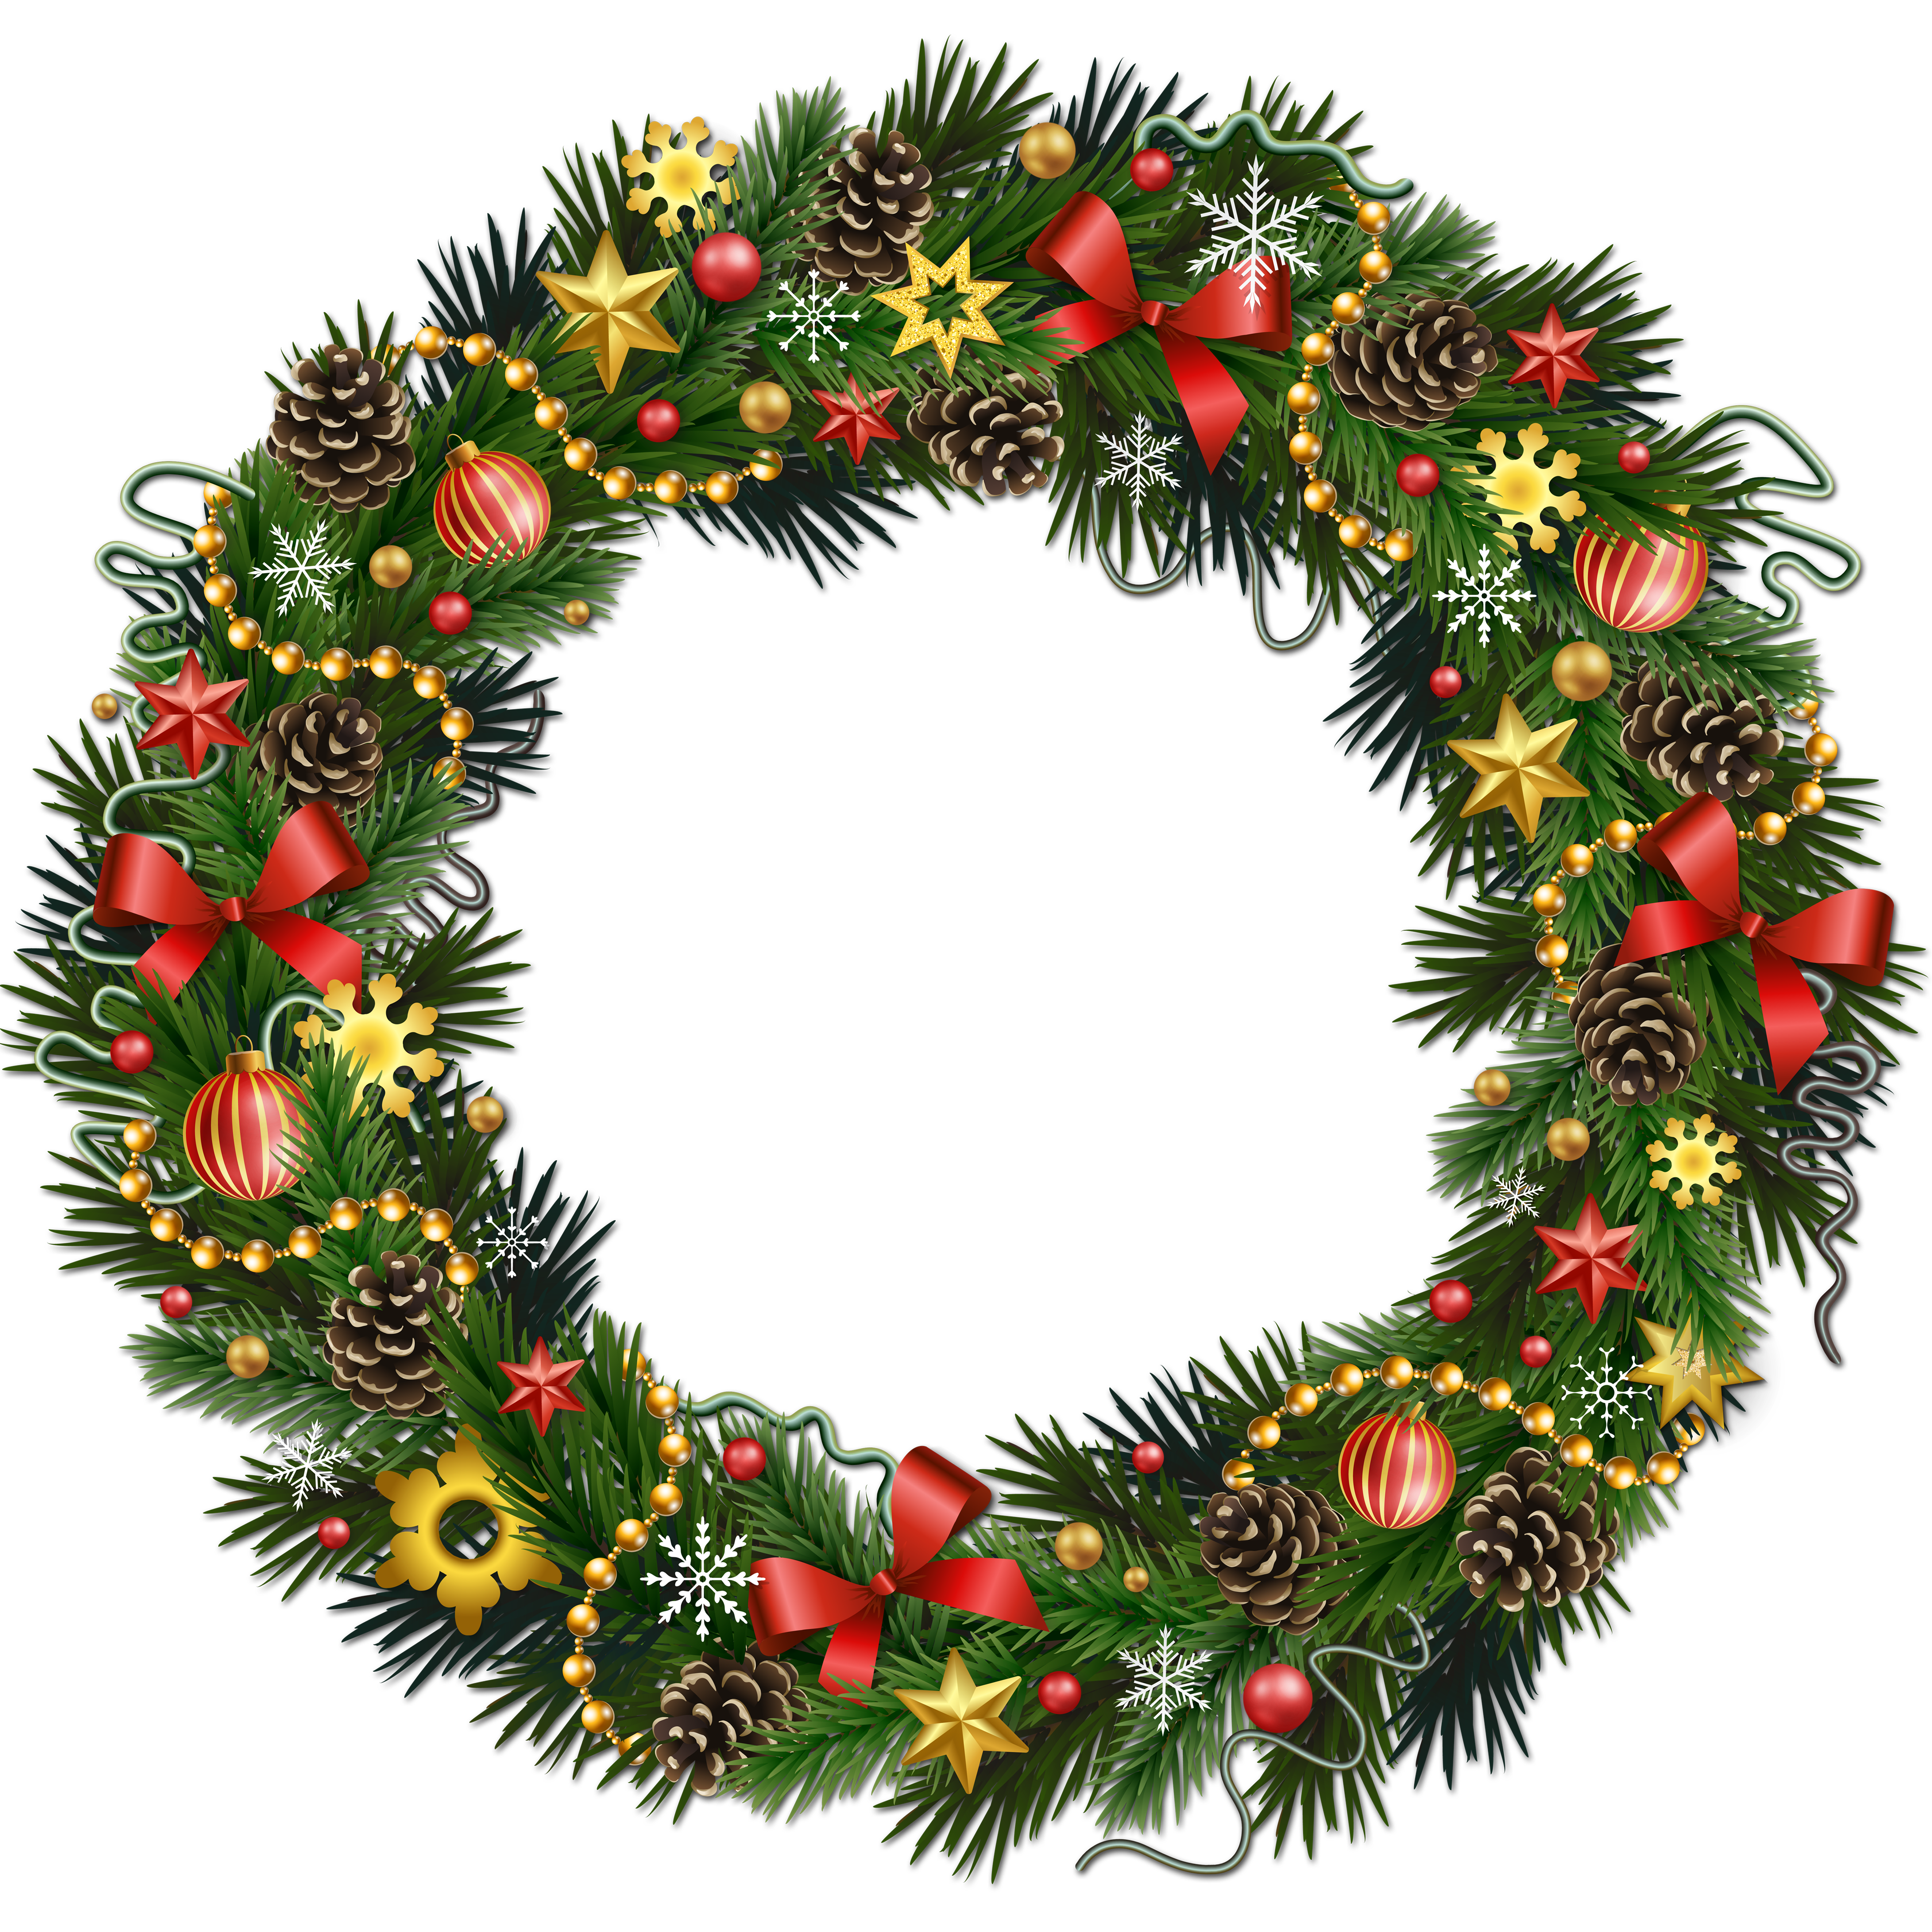 Rudolph Christmas Wreath Clip art.